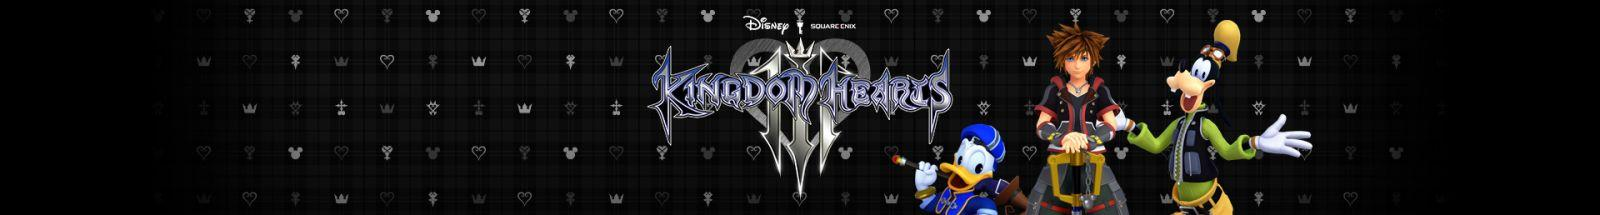 KINGDOM HEARTS III English Website